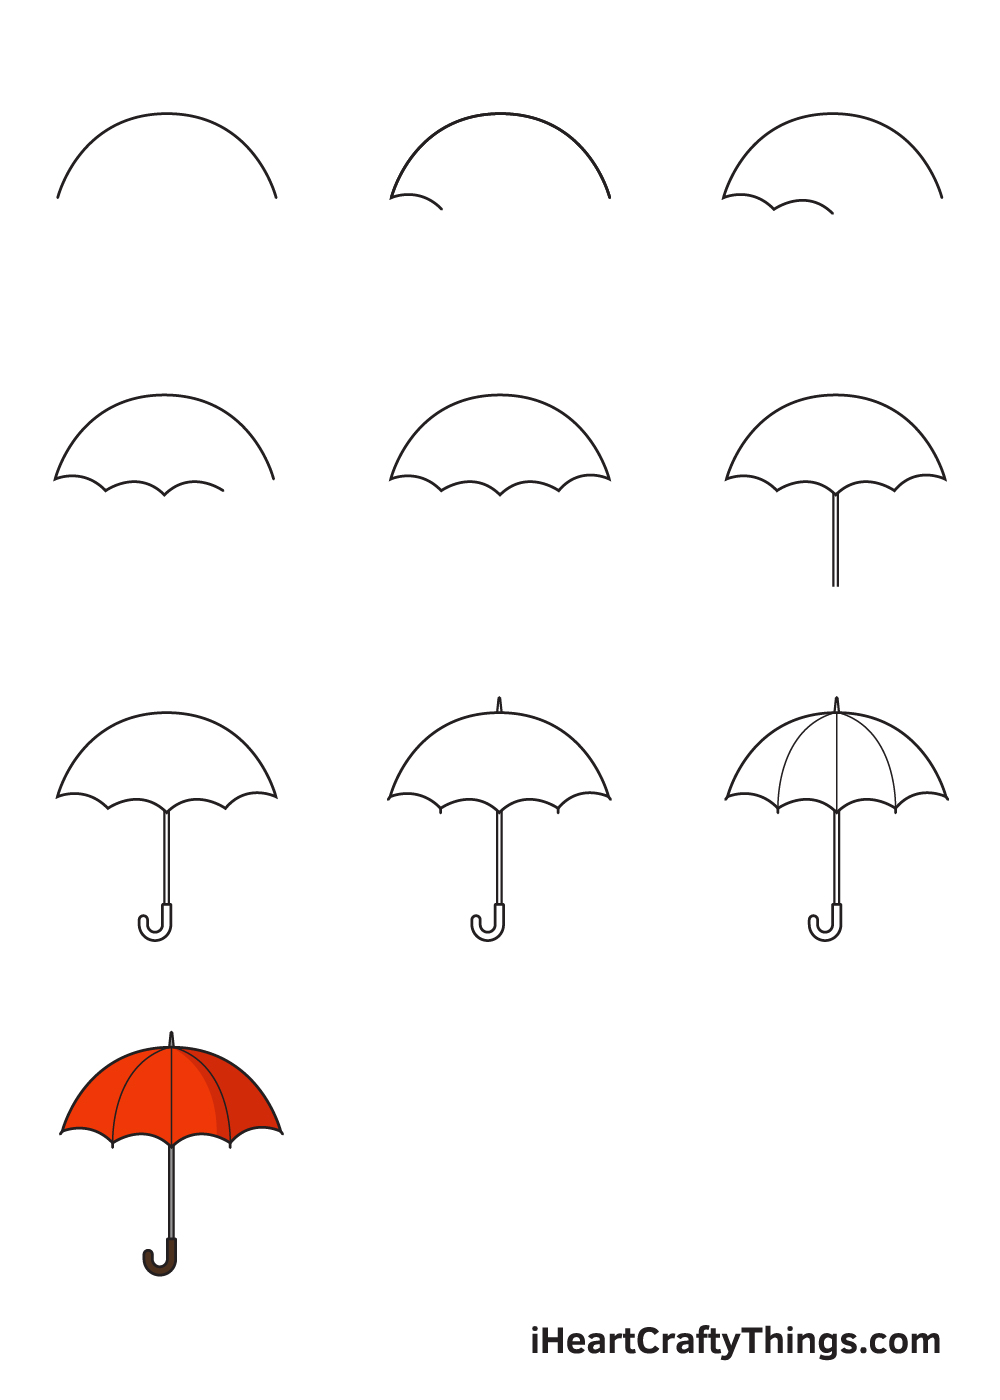 drawing umbrella in 9 steps